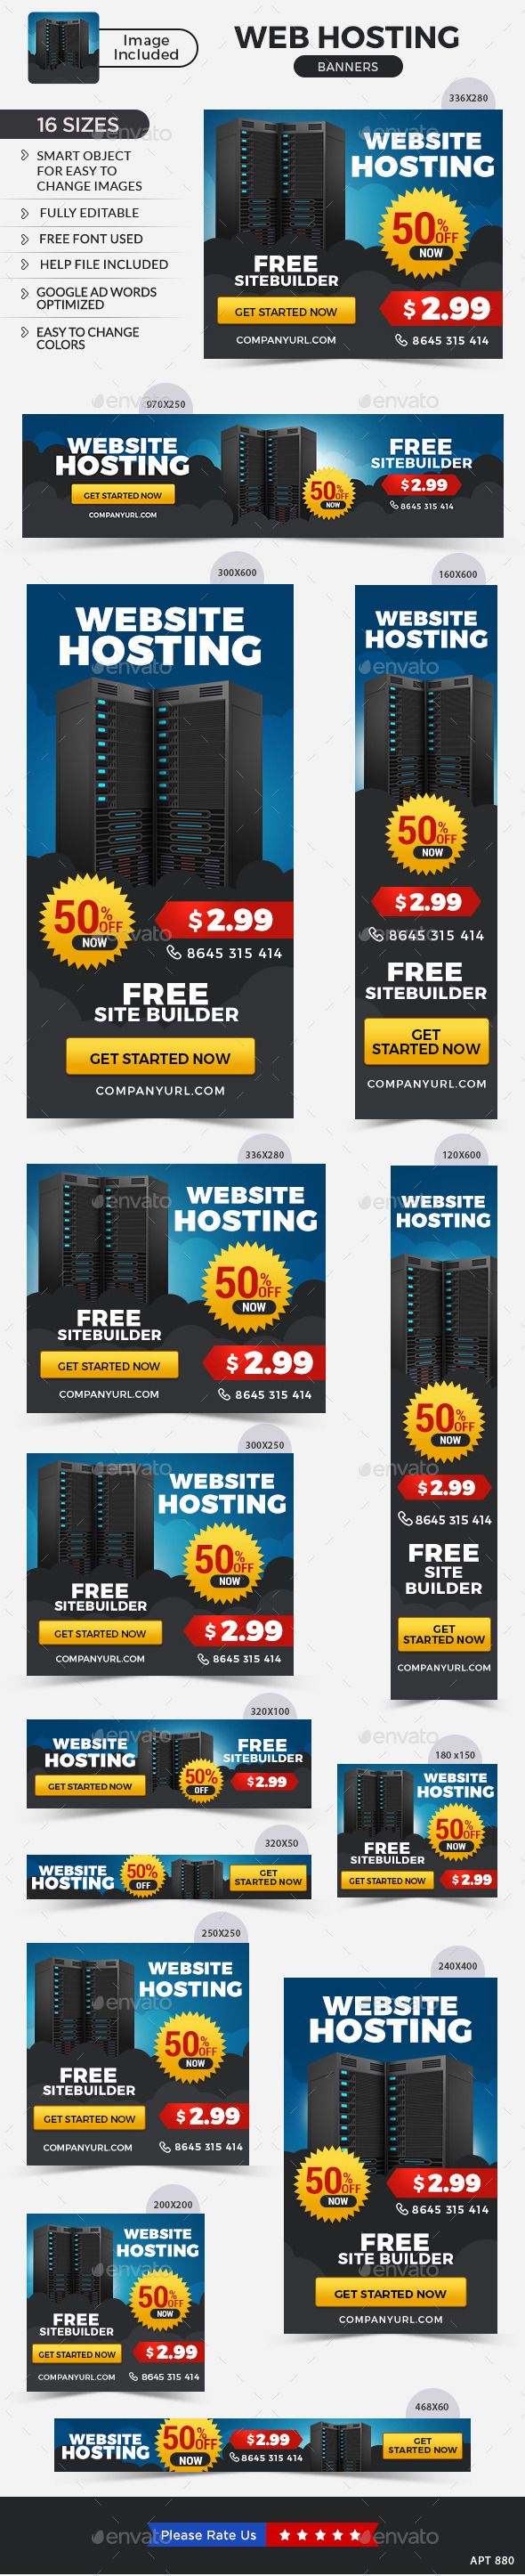 Web Hosting Banners Template #design #ads Buy Now: http://graphicriver.net/item/web-hosting-banners/12878556?ref=ksioks